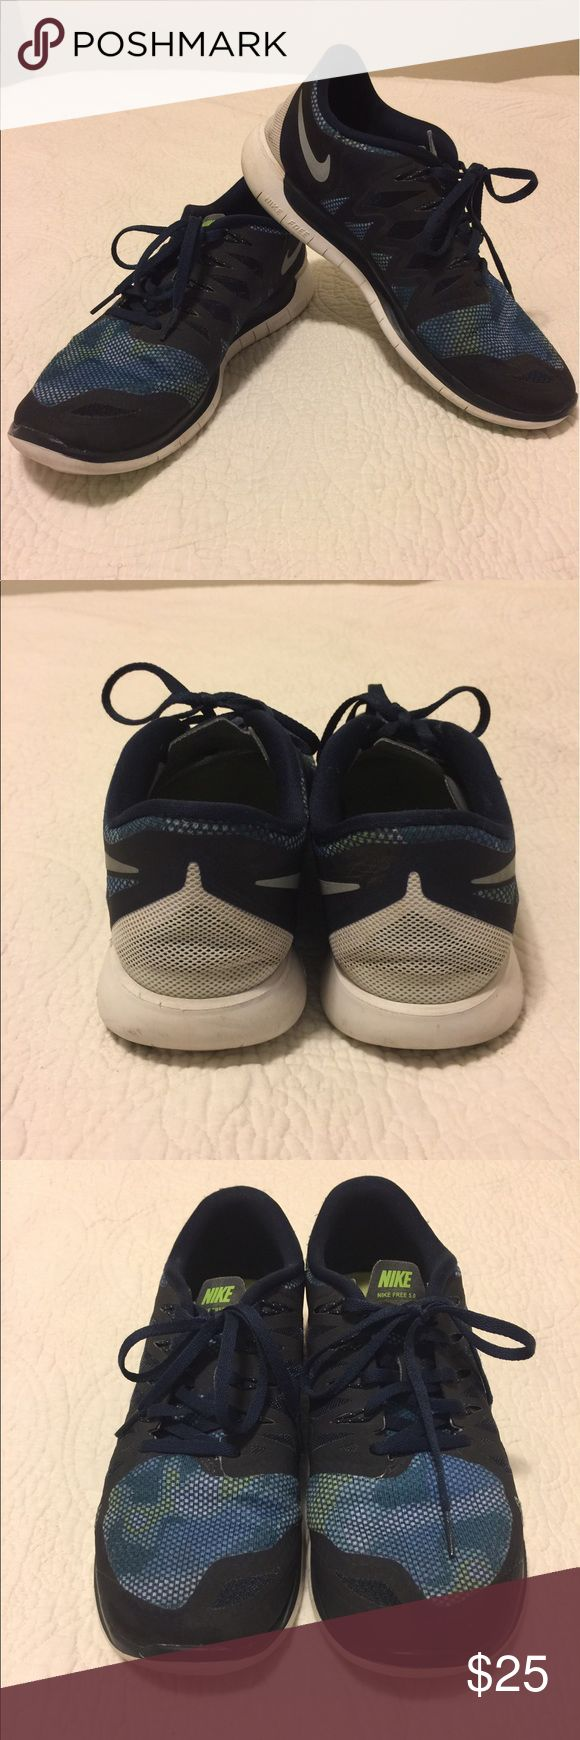 Nike Free 5.0 shoes Excellent condition Nike Free 5.0 shoes size 9. Purchased from a posher and am just not a fan of the newer version of the 5.0. I prefer the older version. Nike Shoes Athletic Shoes